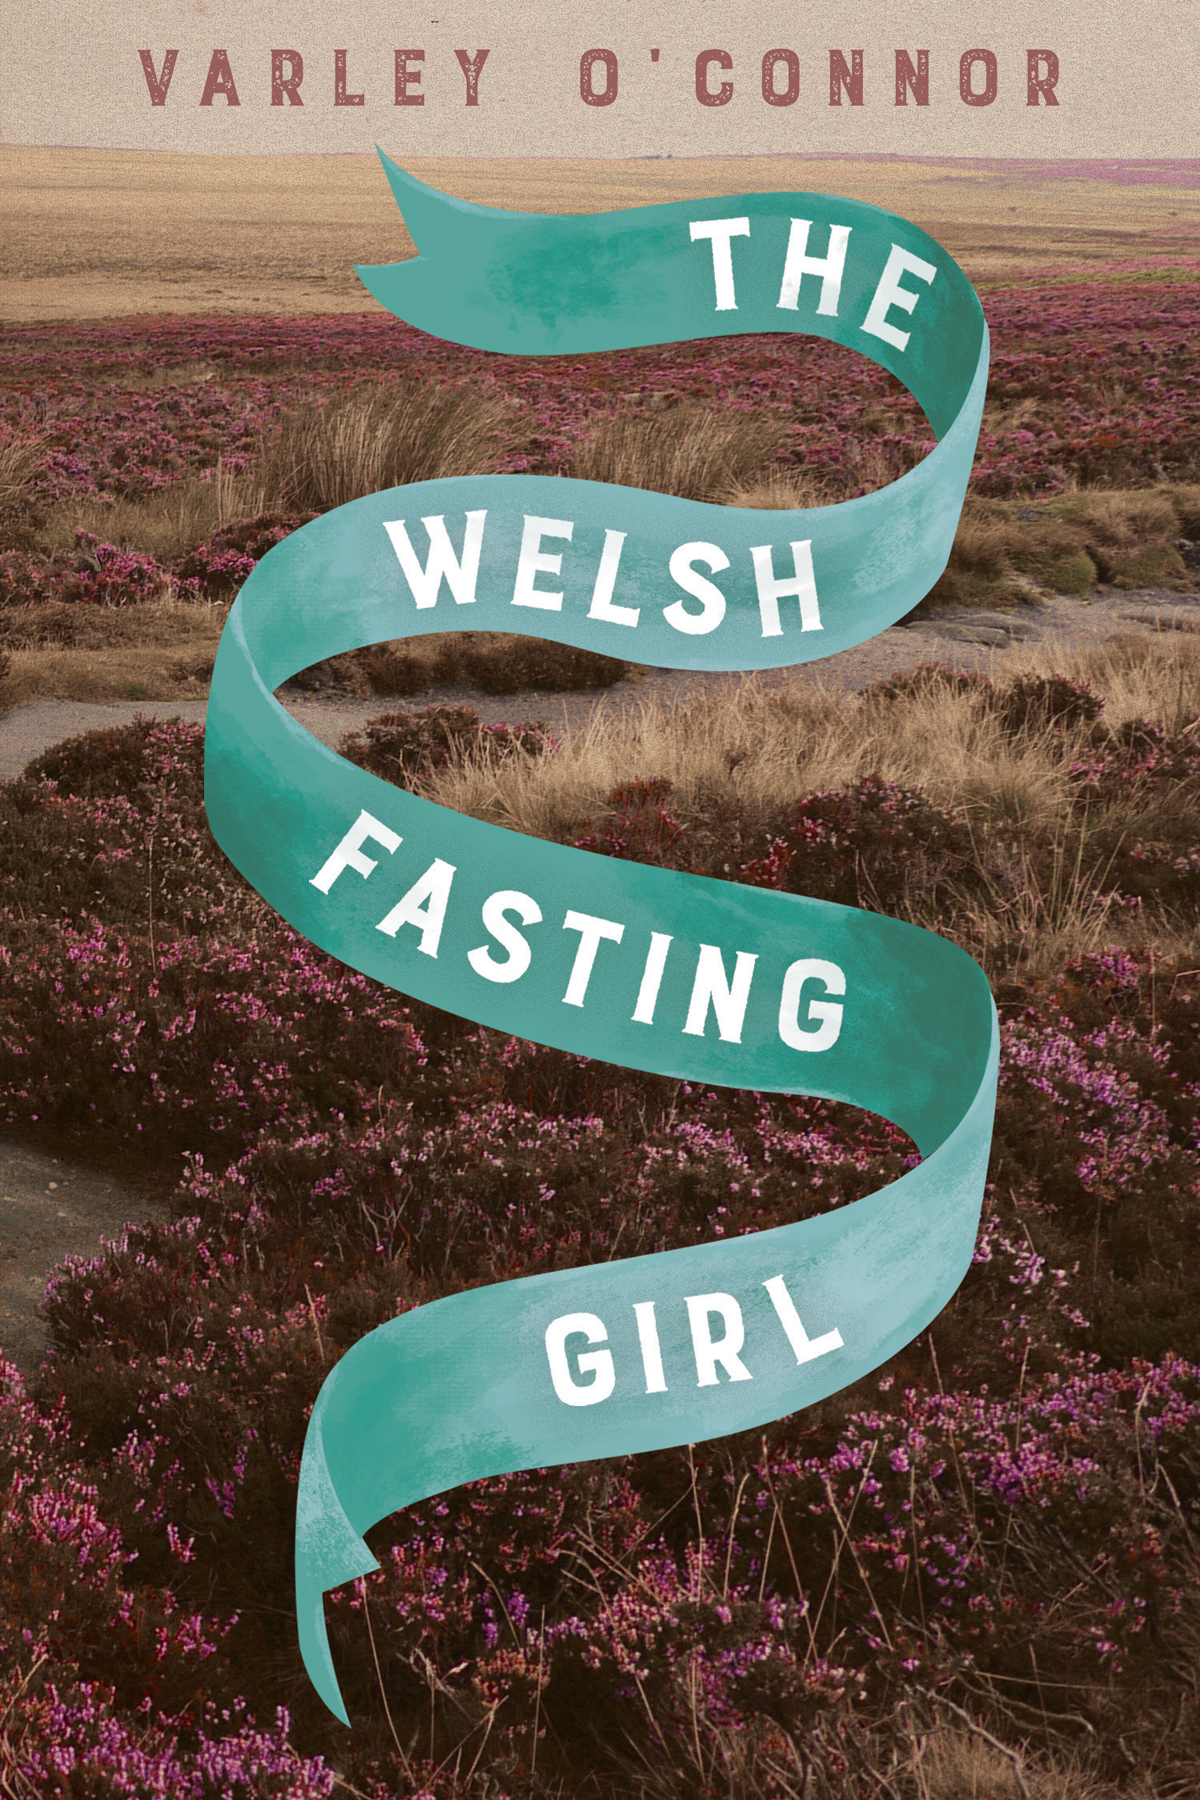 O'Connor, Varley THE WELSH FASTING GIRL.jpg